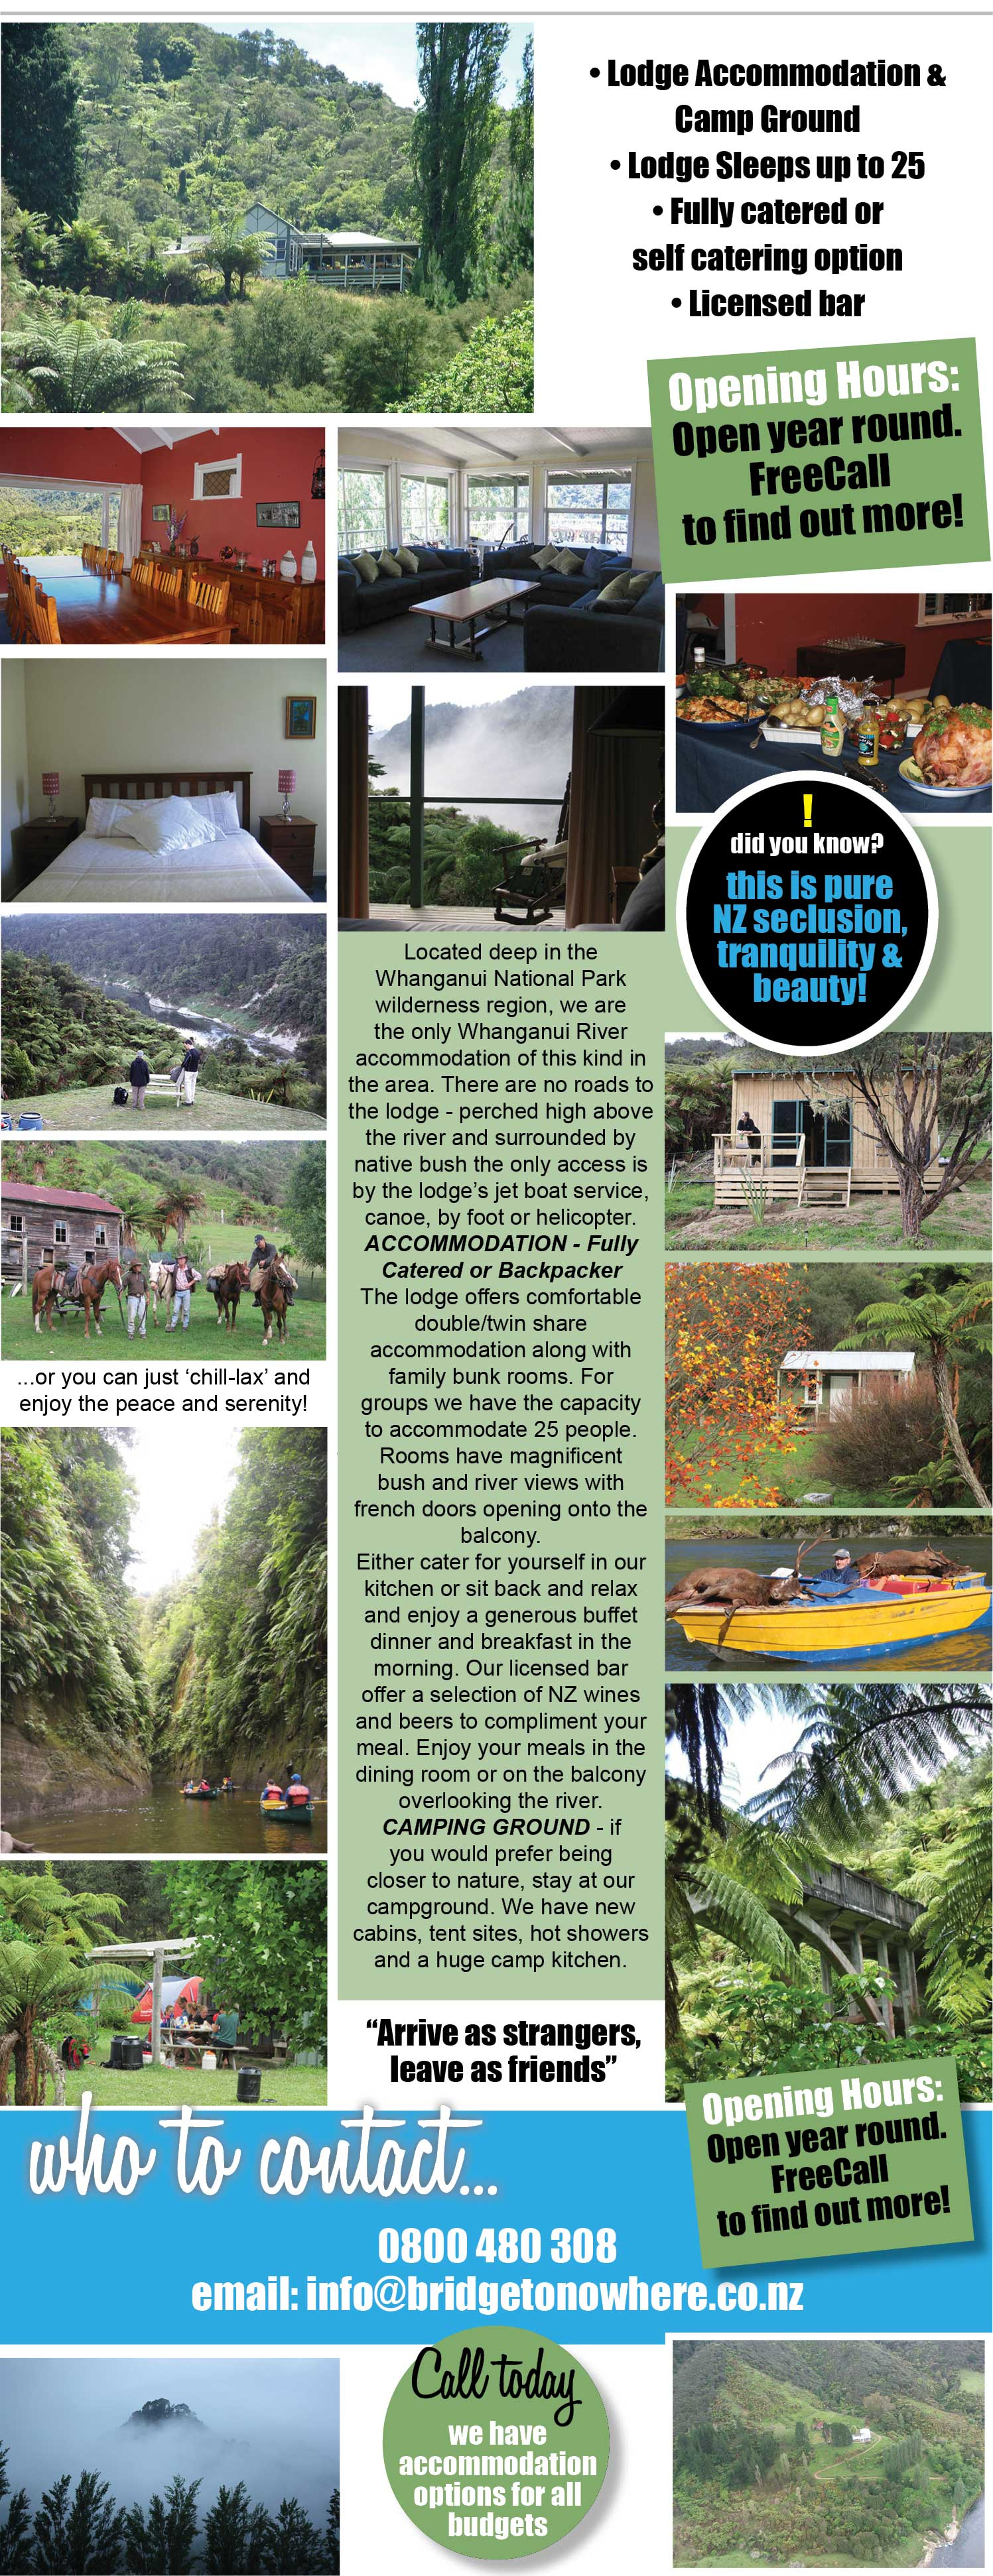 Welcome to the Bridge to Nowhere. Lodge Accommodation - Fully Catered Or Backpacker. Camp ground. Licensed bar. Activities, tramping, kayaking, jet boats tours. Whanganui River, Whanganui National Park